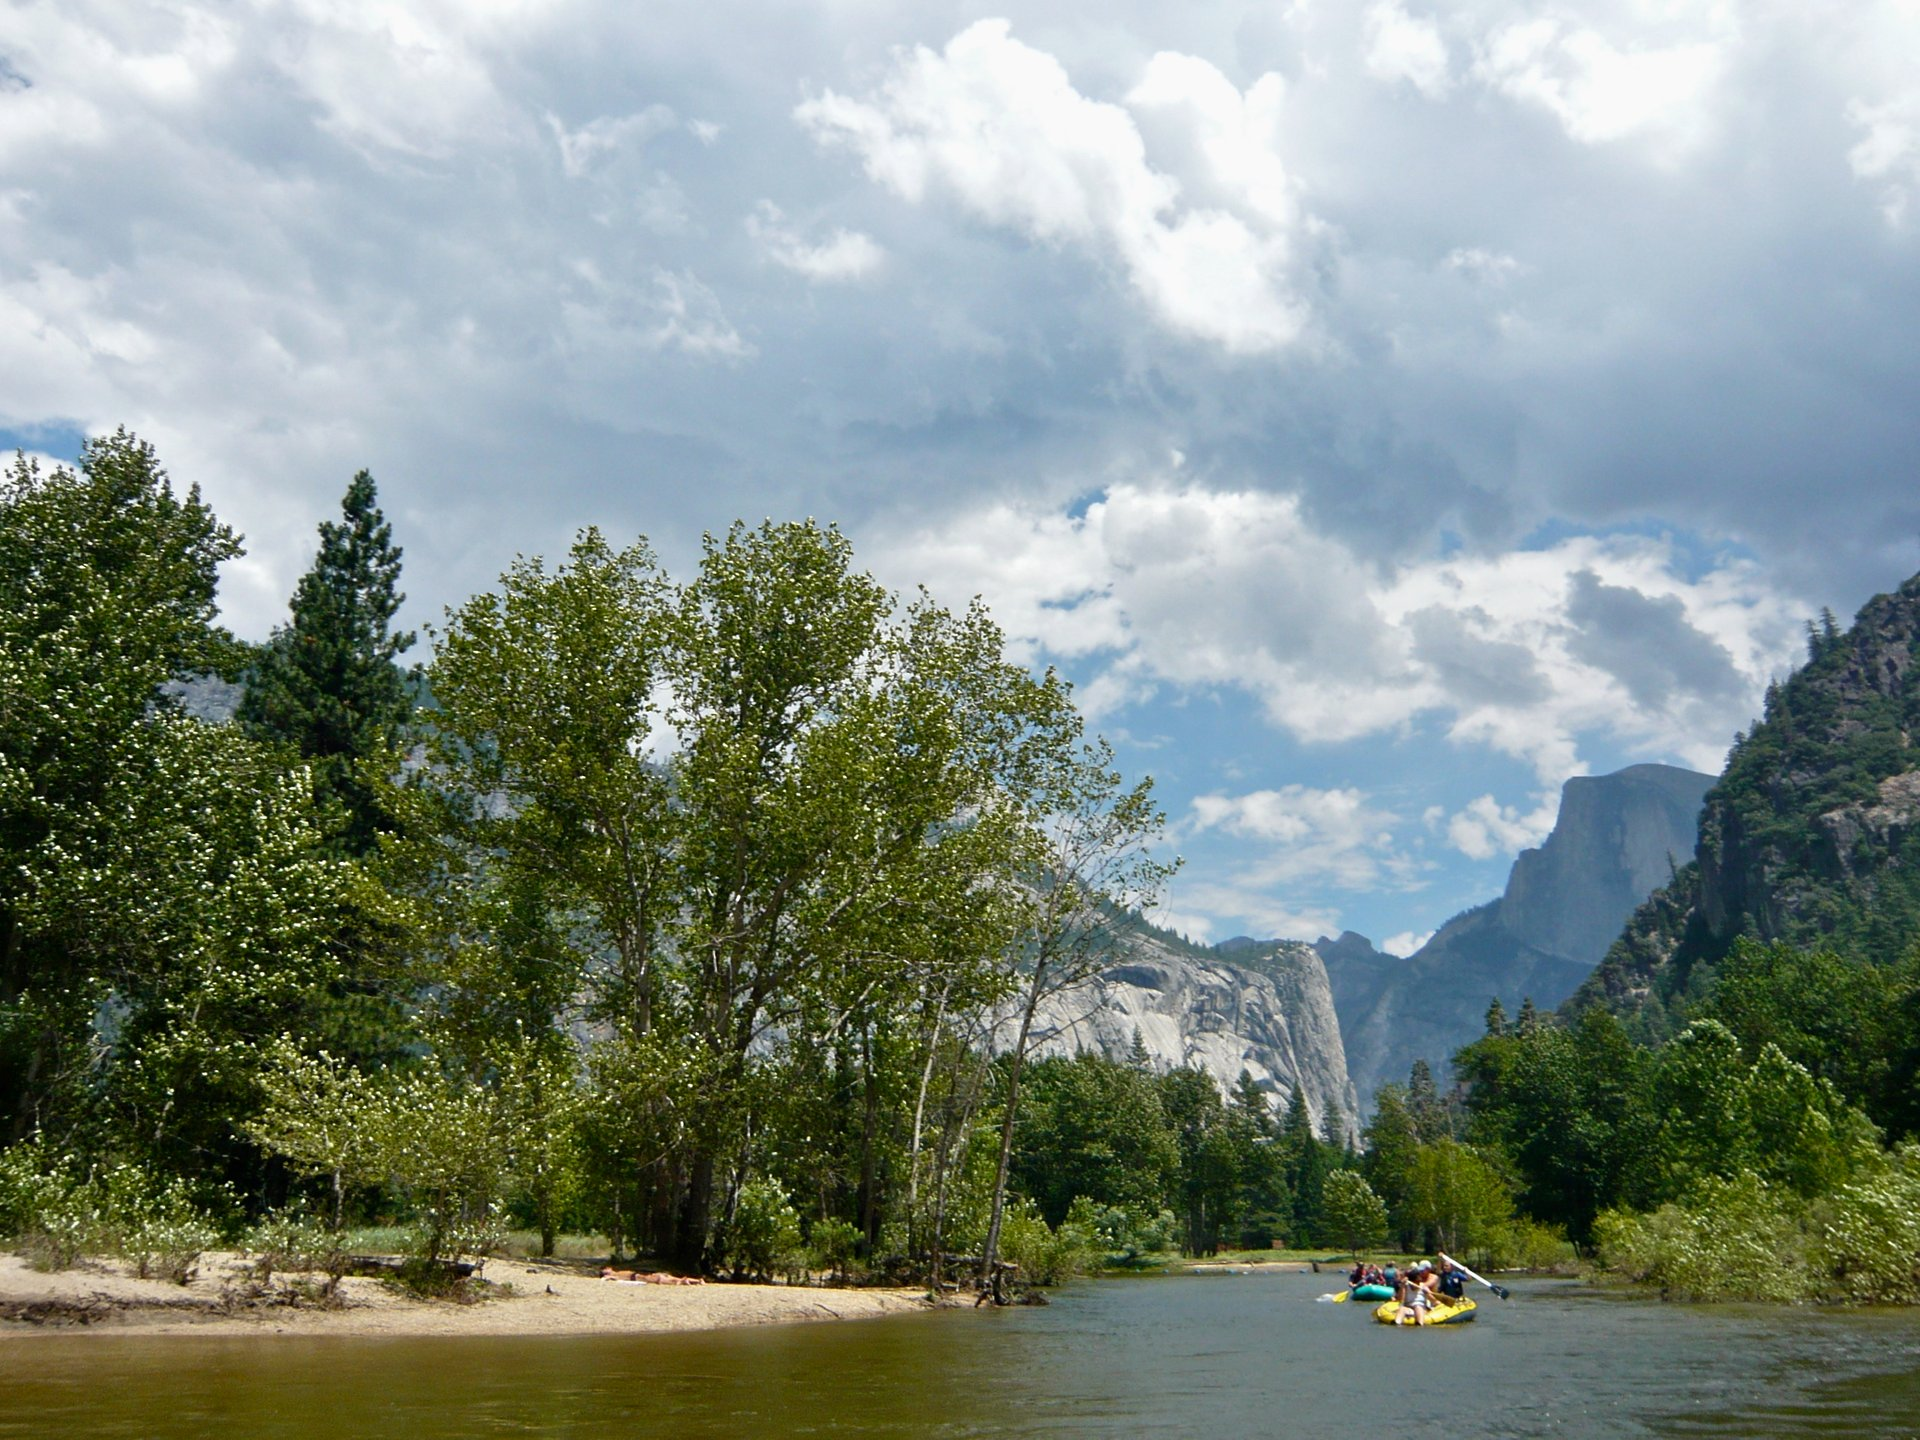 Kayaking and Canoeing the Merced River in Yosemite 2019 - Best Time